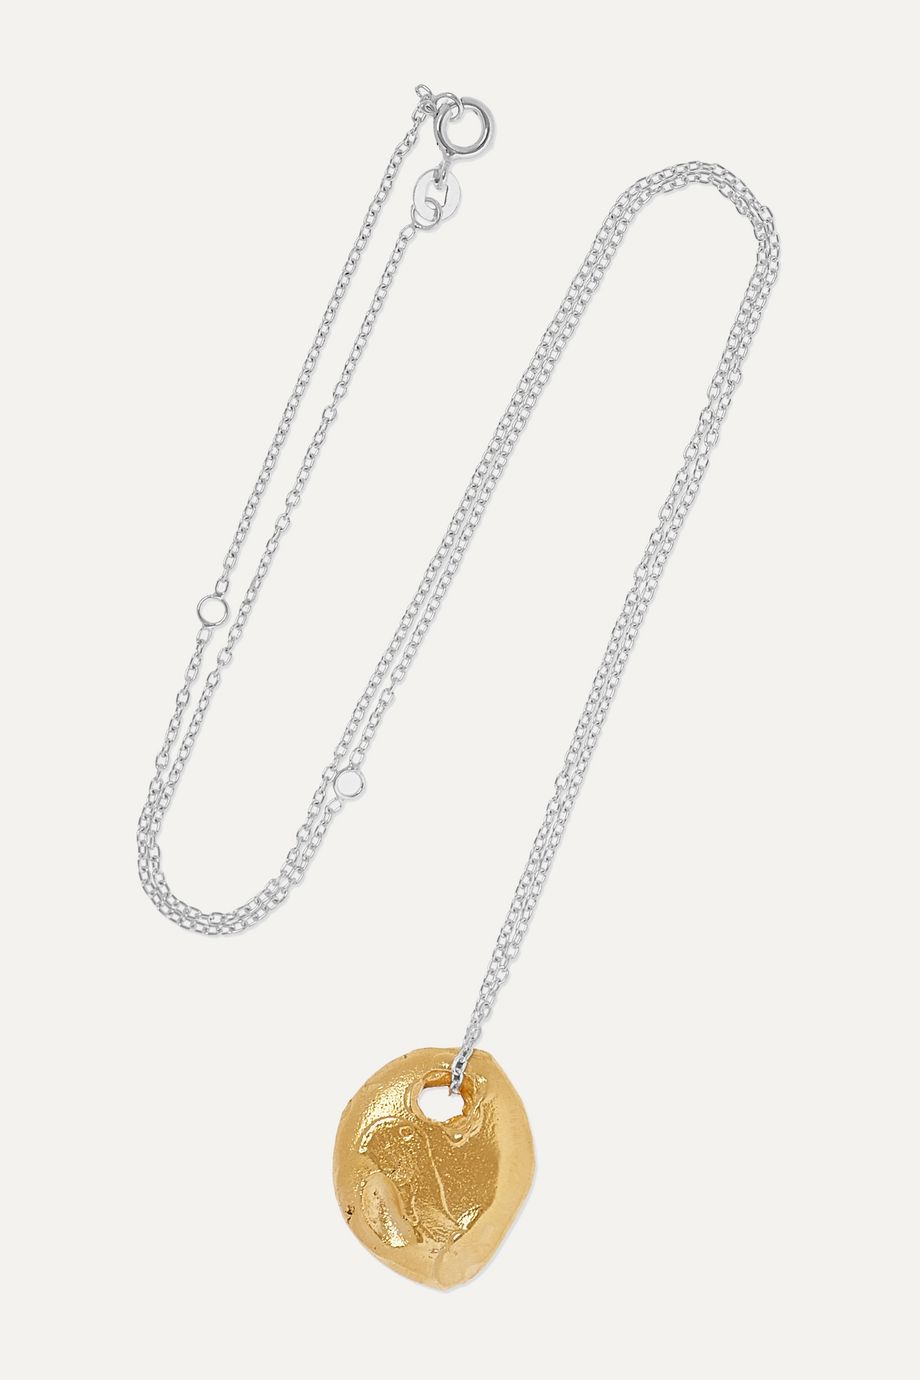 Alighieri The Horizon In Sight gold-plated and silver necklace